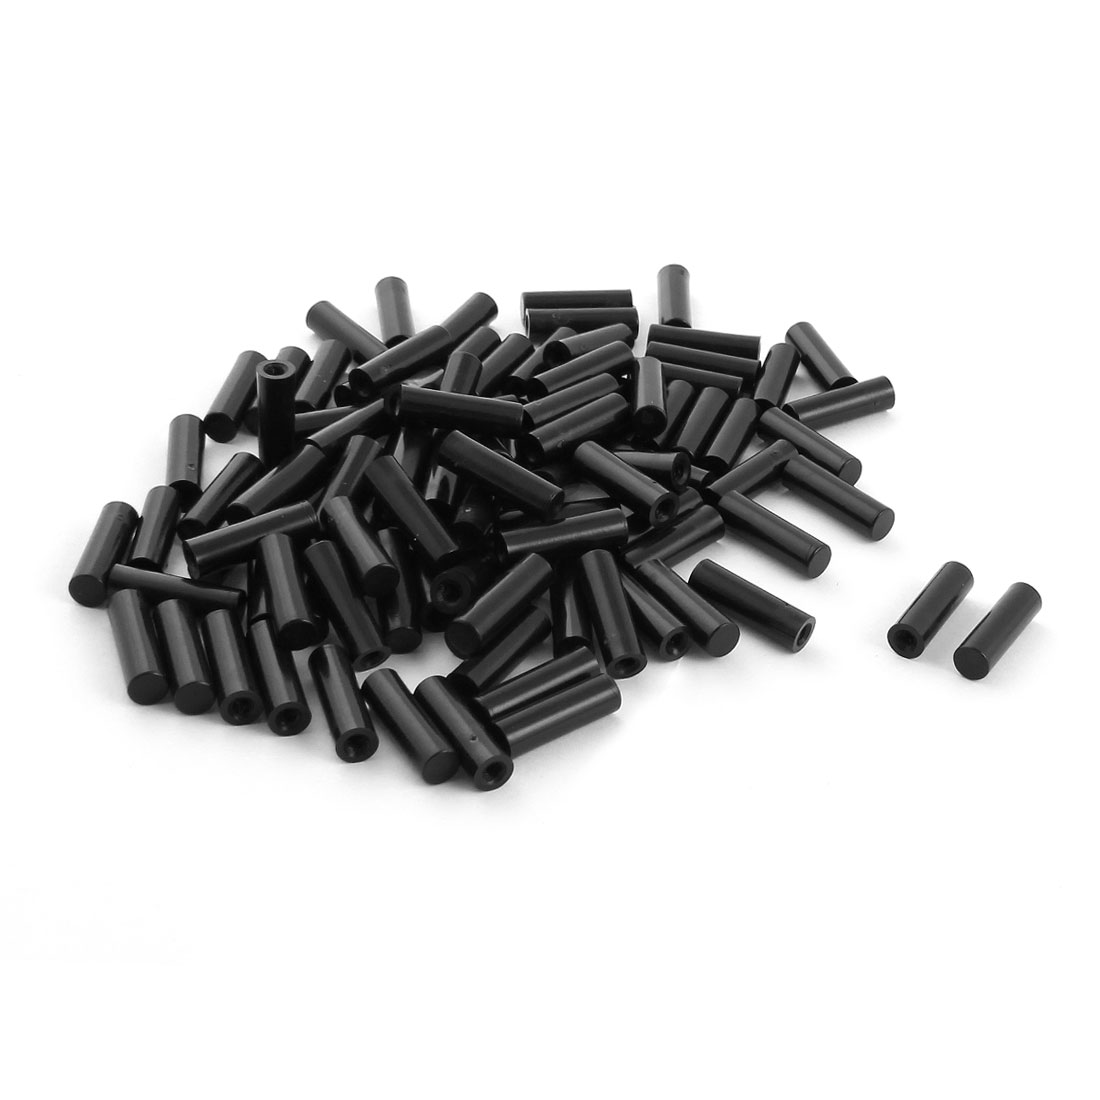 100Pcs 6x20mm PCB Test Flat End Fixture Hardware Parts Plate POM Stand Fixed Rod Black